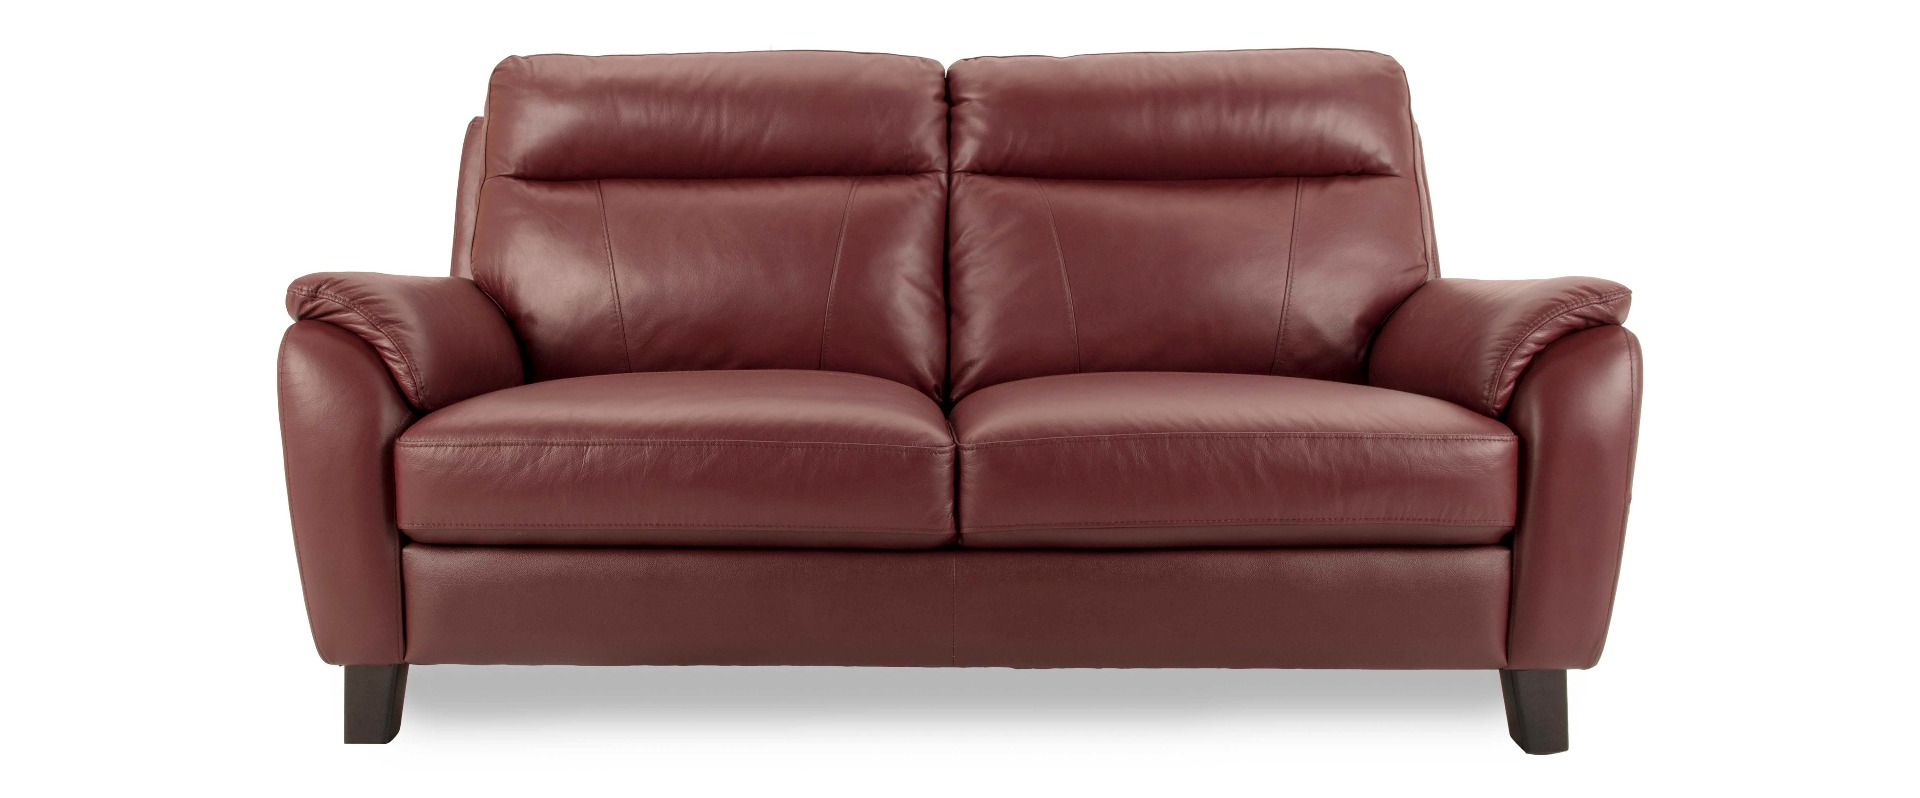 leather sofas sets ez living furniture ireland - Sofa Leather